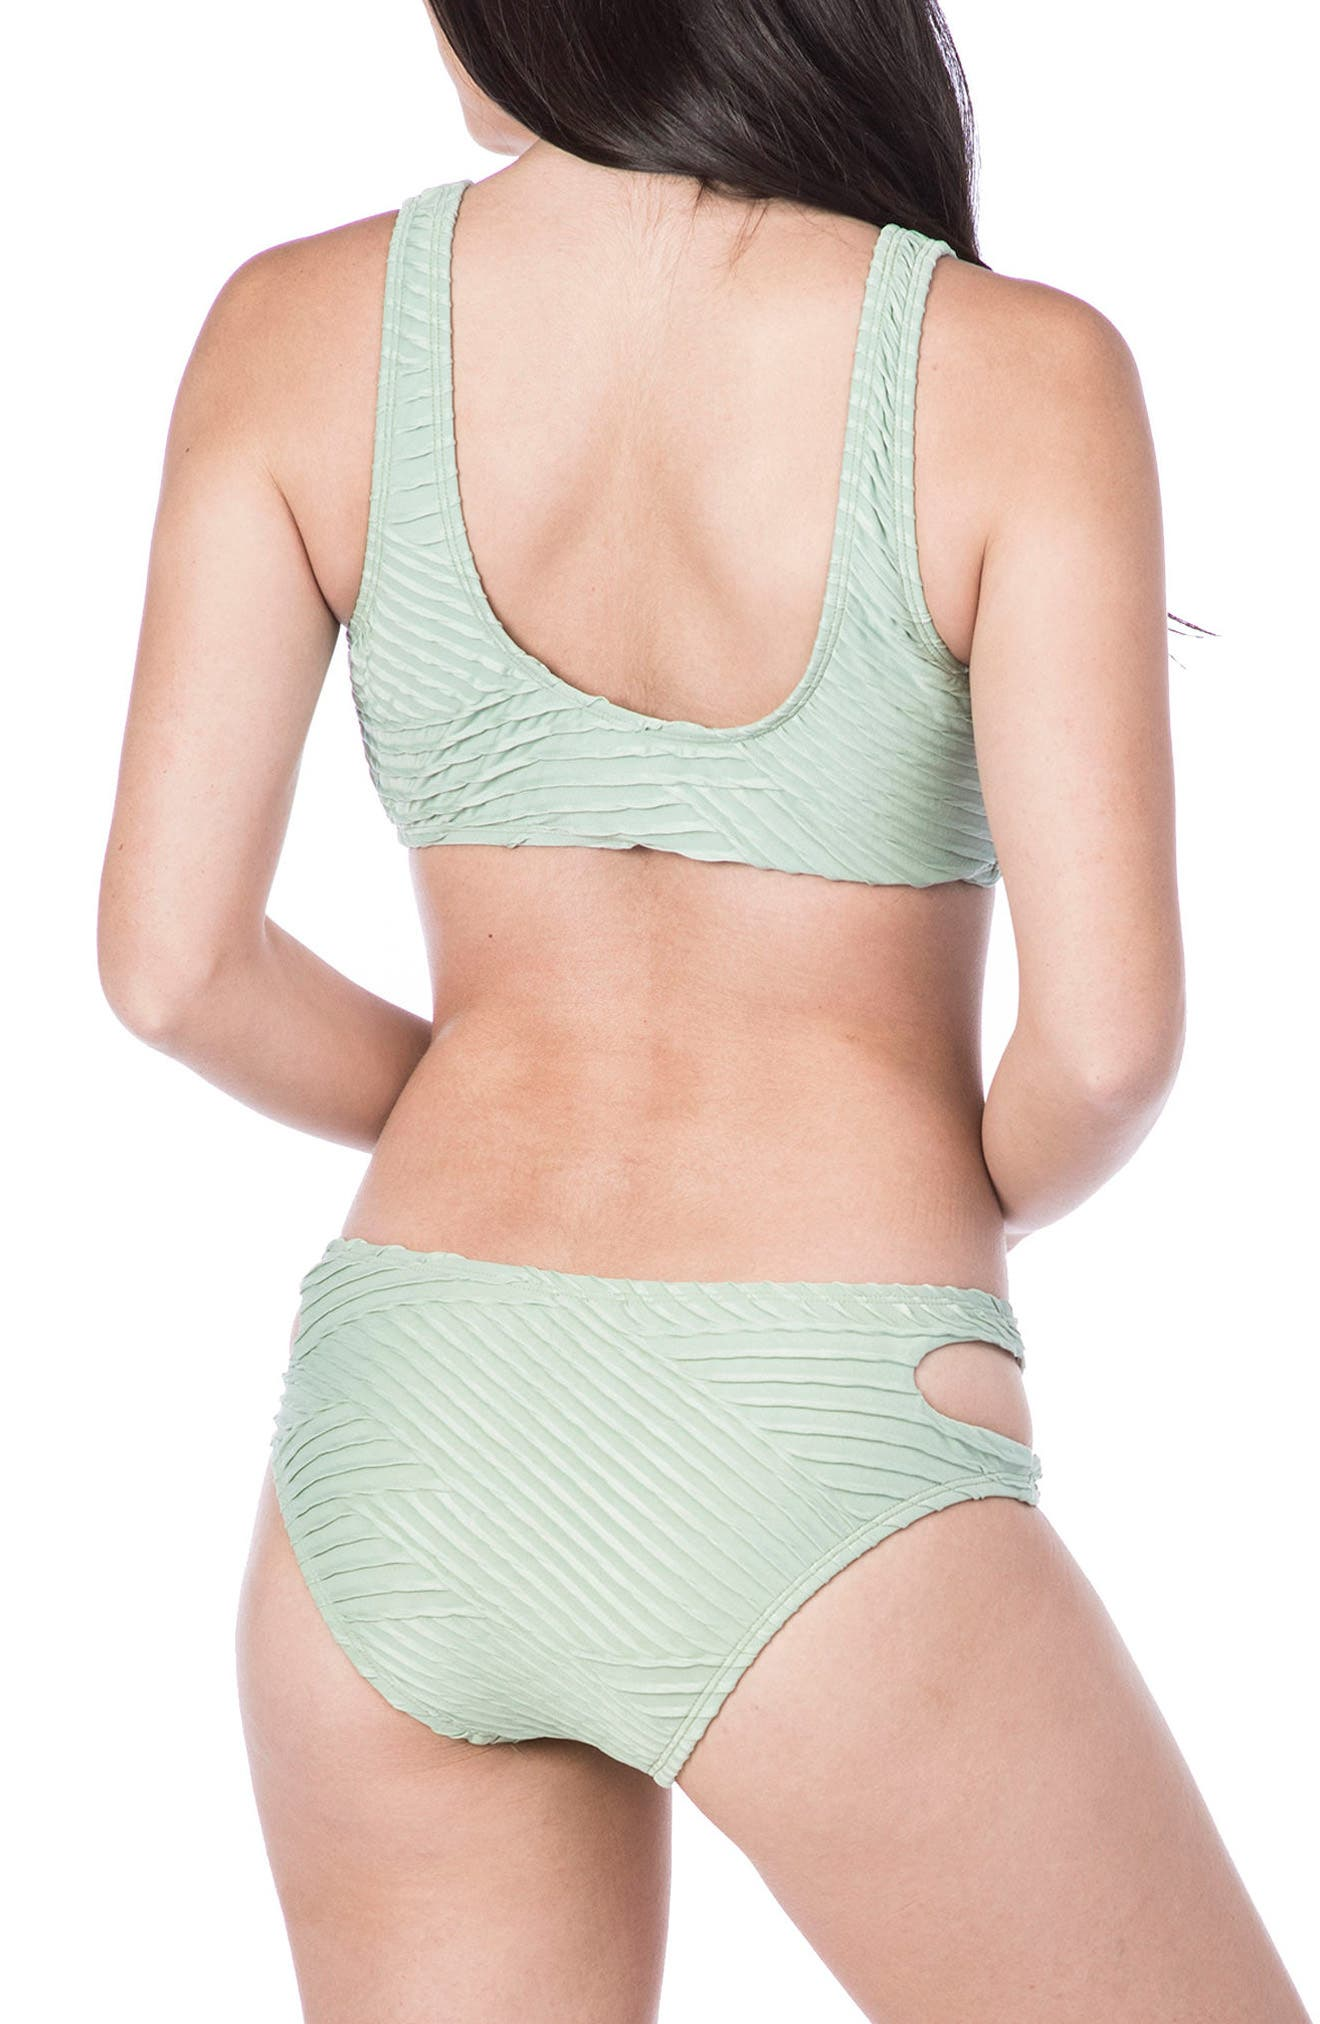 Sand Dune Hipster Bikini Bottoms,                             Alternate thumbnail 4, color,                             SAGE